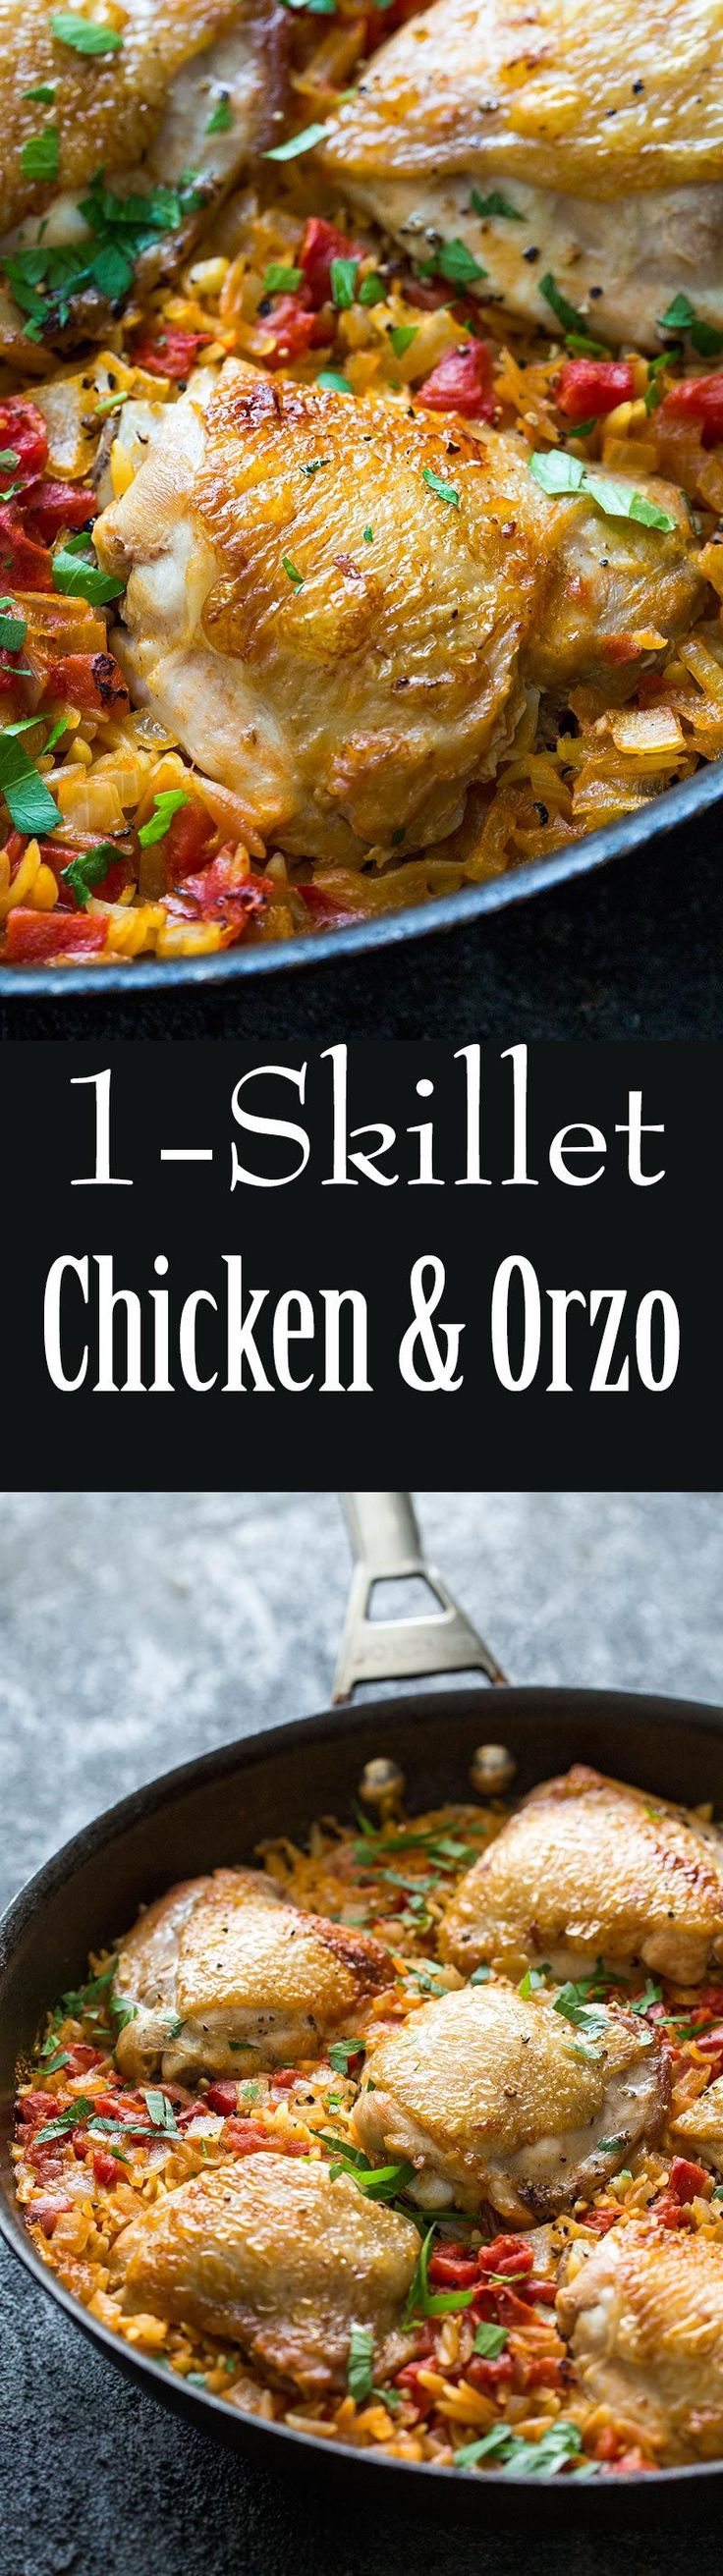 Zo S Kitchen Chicken Orzo 25+ best one pot chicken ideas on pinterest | one pot meals, oven